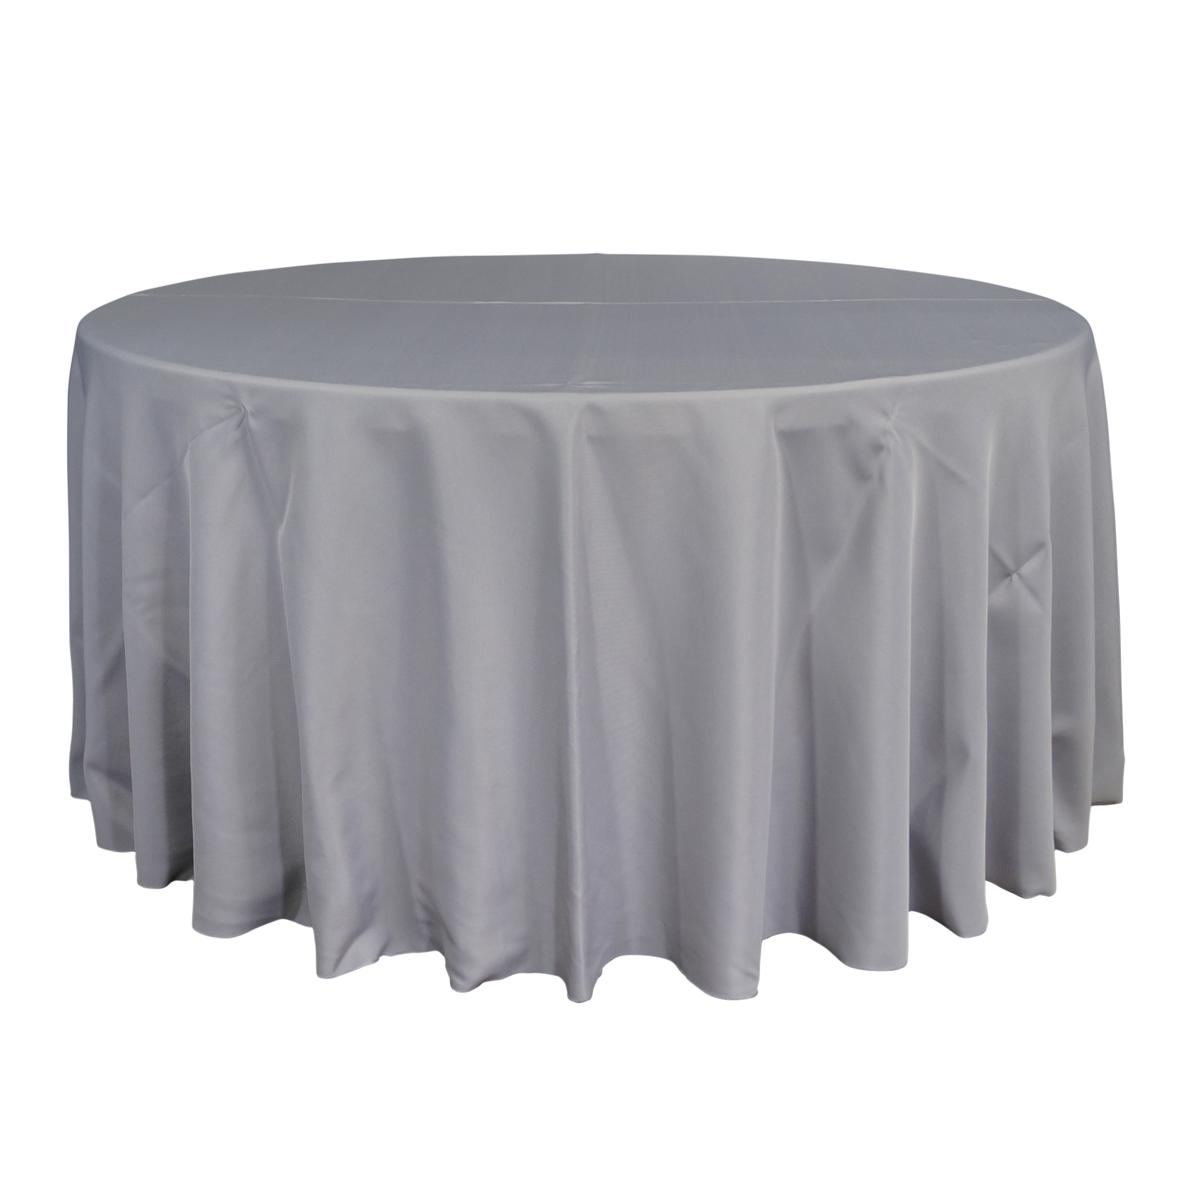 "Economy Polyester Poplin 120"" Round Tablecloth - Silver"